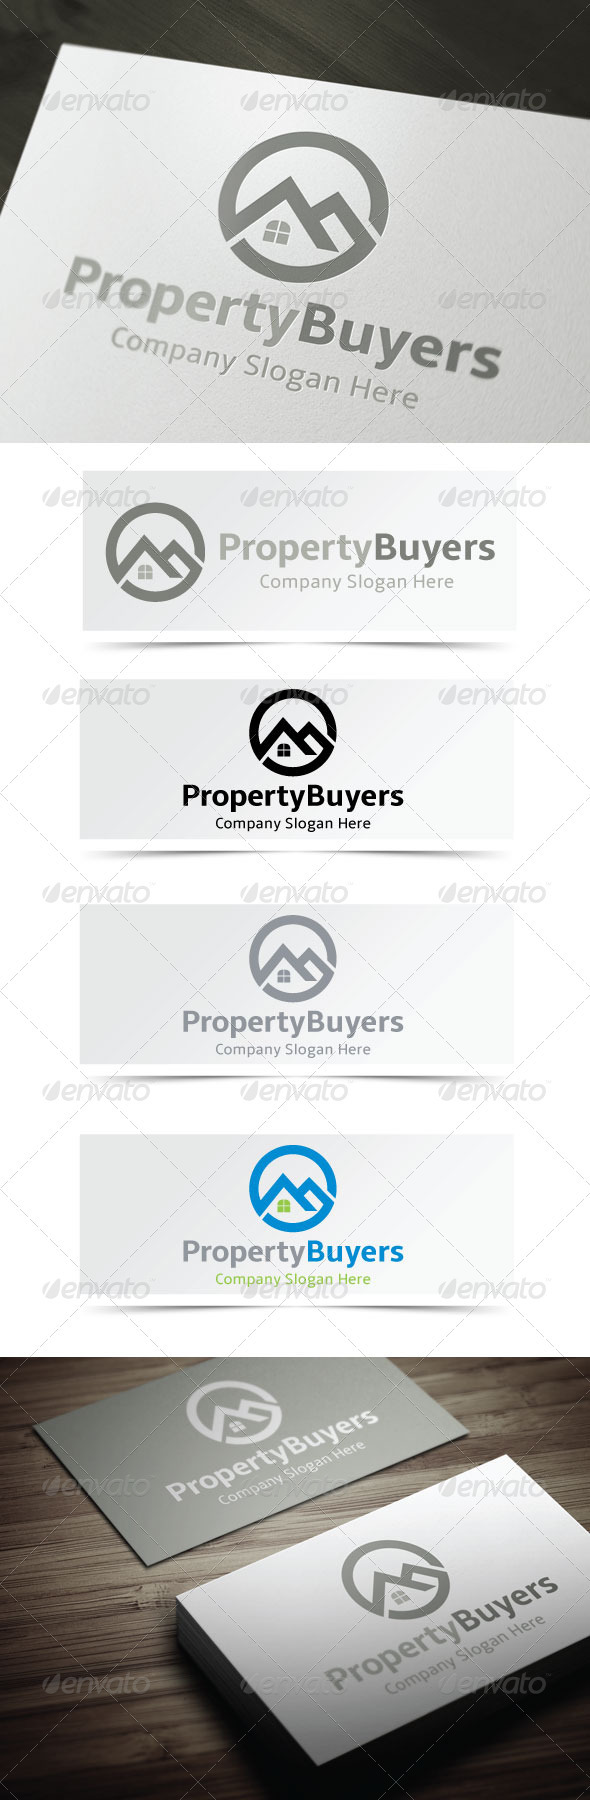 GraphicRiver Property Buyers 3966323